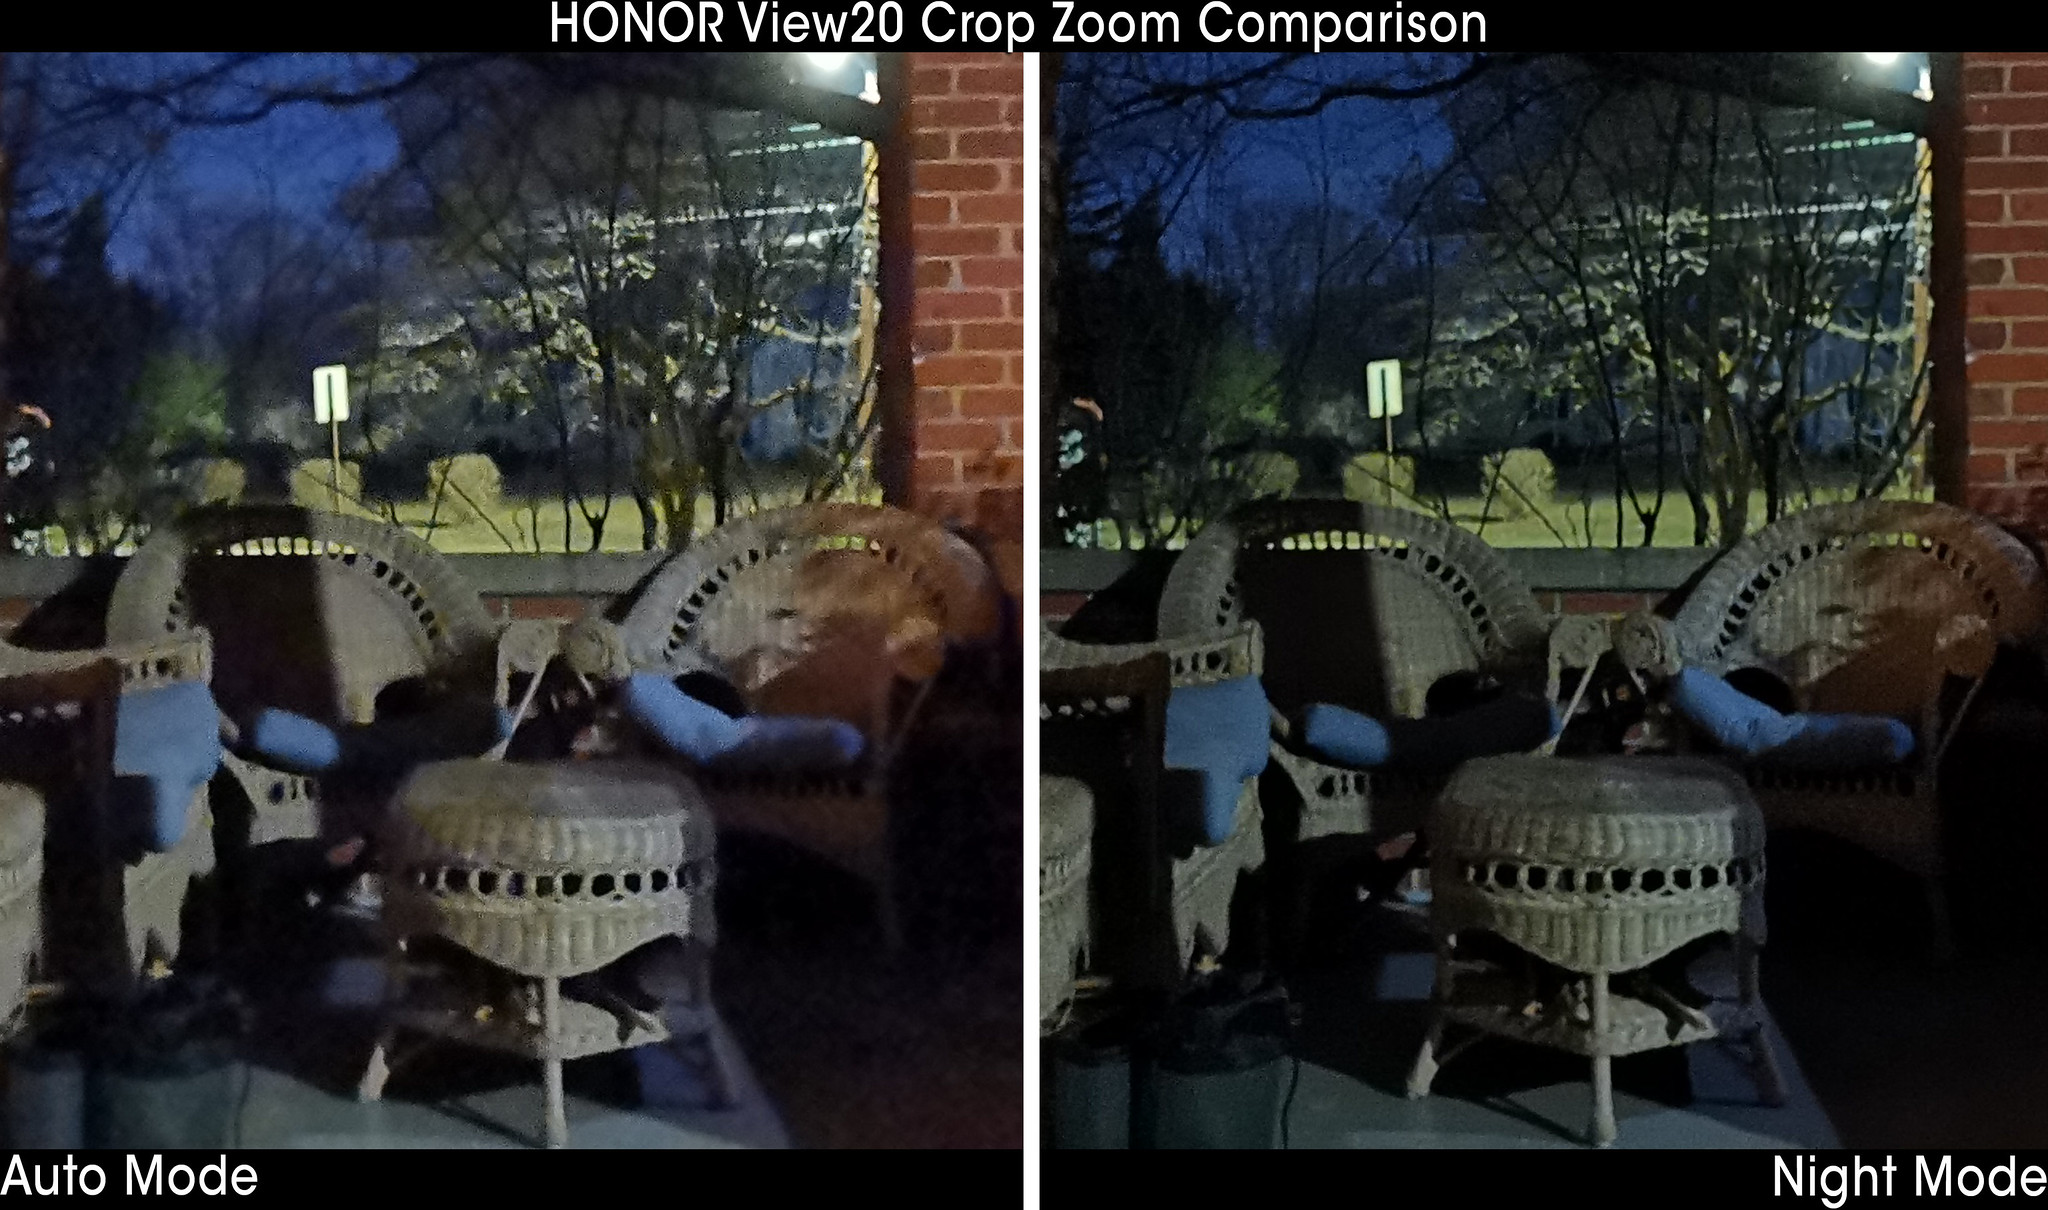 HONOR-View20-AH-NS-Auto-vs-Night-01z